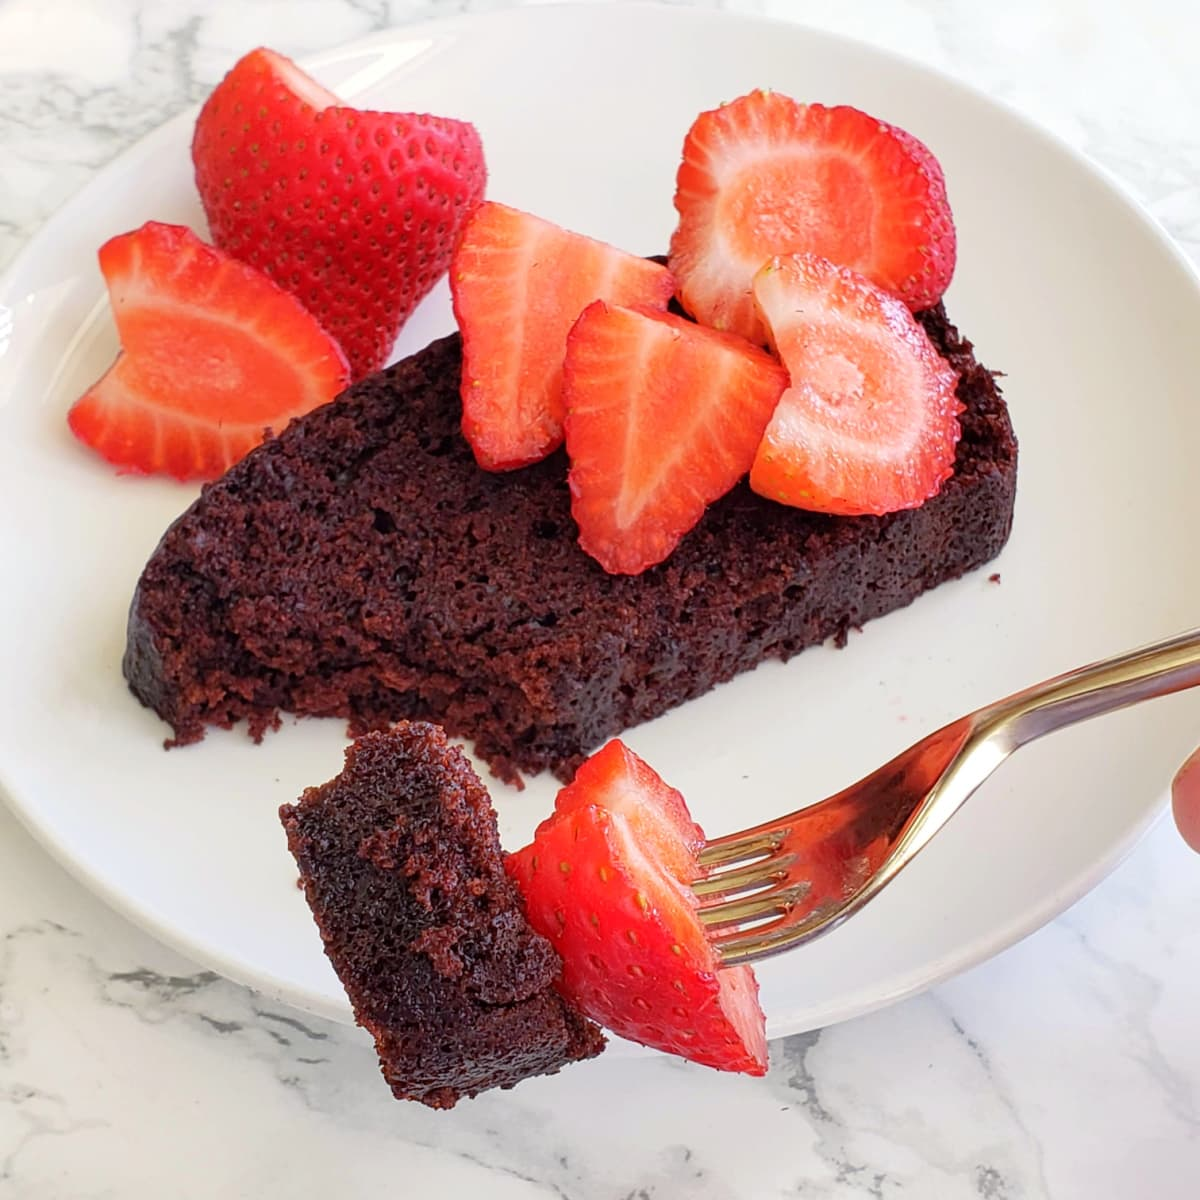 Vegan Chocolate Loaf Cake is a deep, rich, moist, soft cake, just the right size for a few pieces for you and a few to share. You won't miss the eggs, butter or milk, I promise.